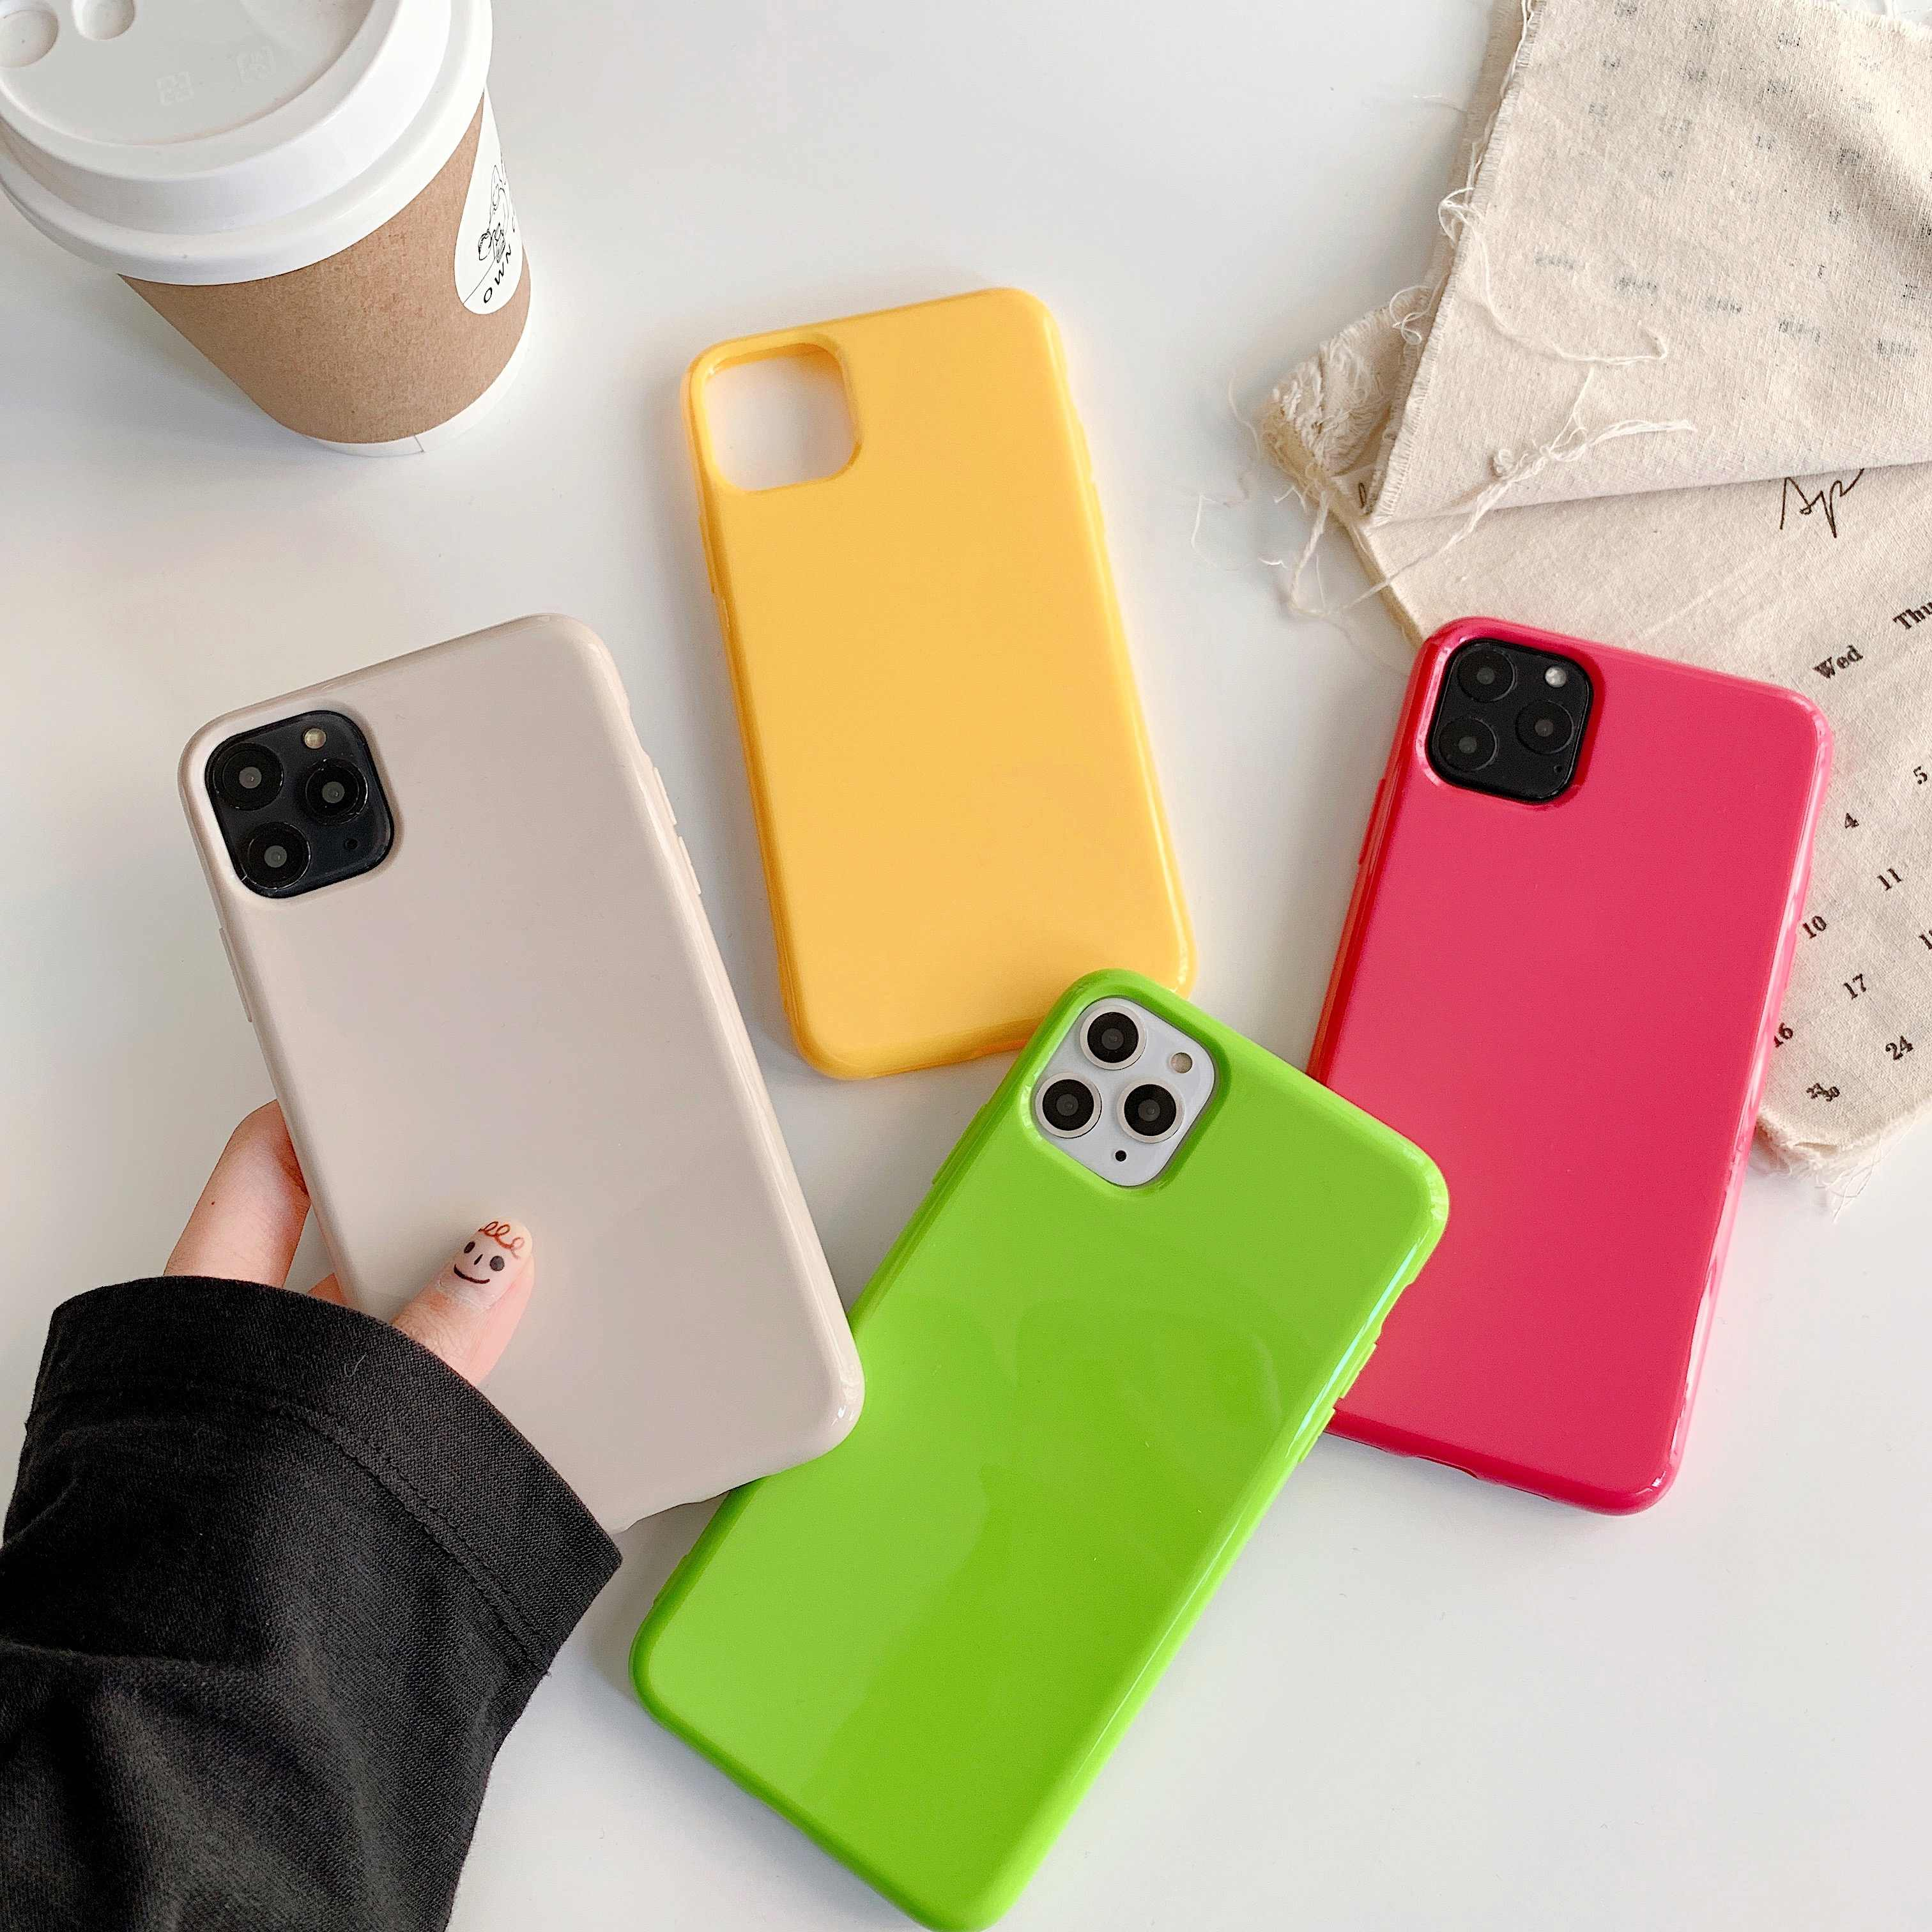 Ranipobo Fashion Sample Pure Kleur Glad Dikke Soft Shell Voor Iphone 11 Pro Xr Xs X Xs Max 7 8 6 6S Plus Pure Kleur Telefoon Shell